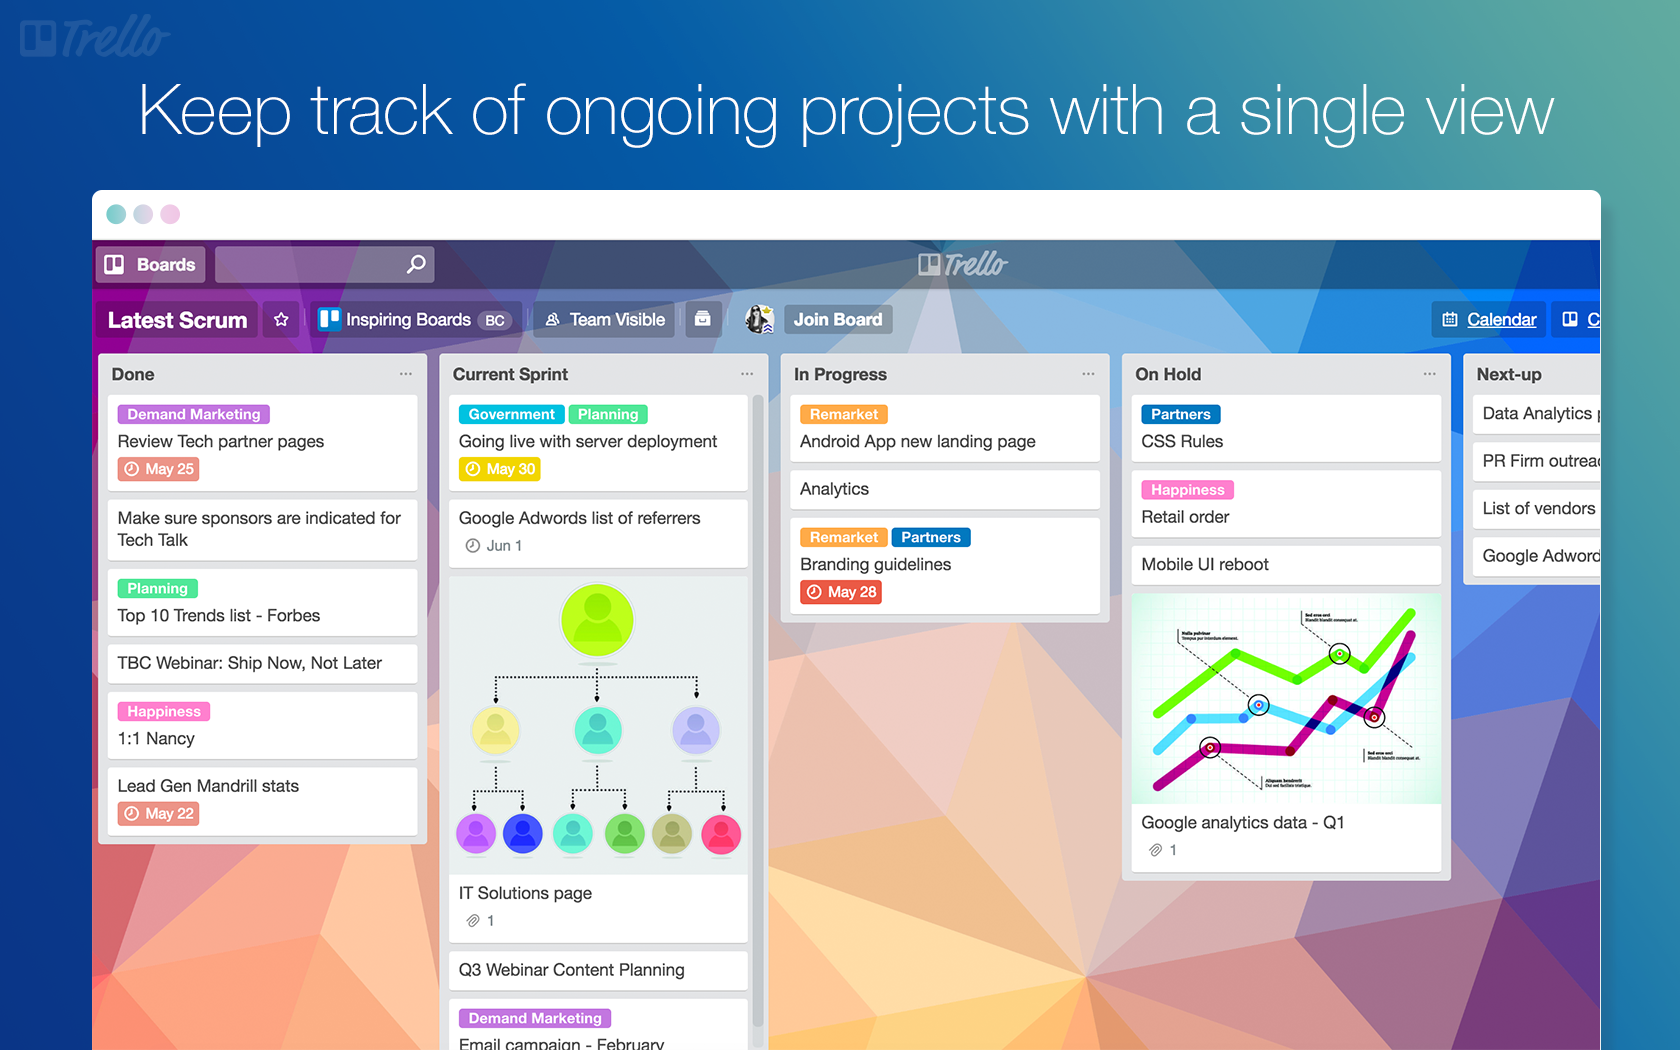 Ongoing projects can be tracked in a single view